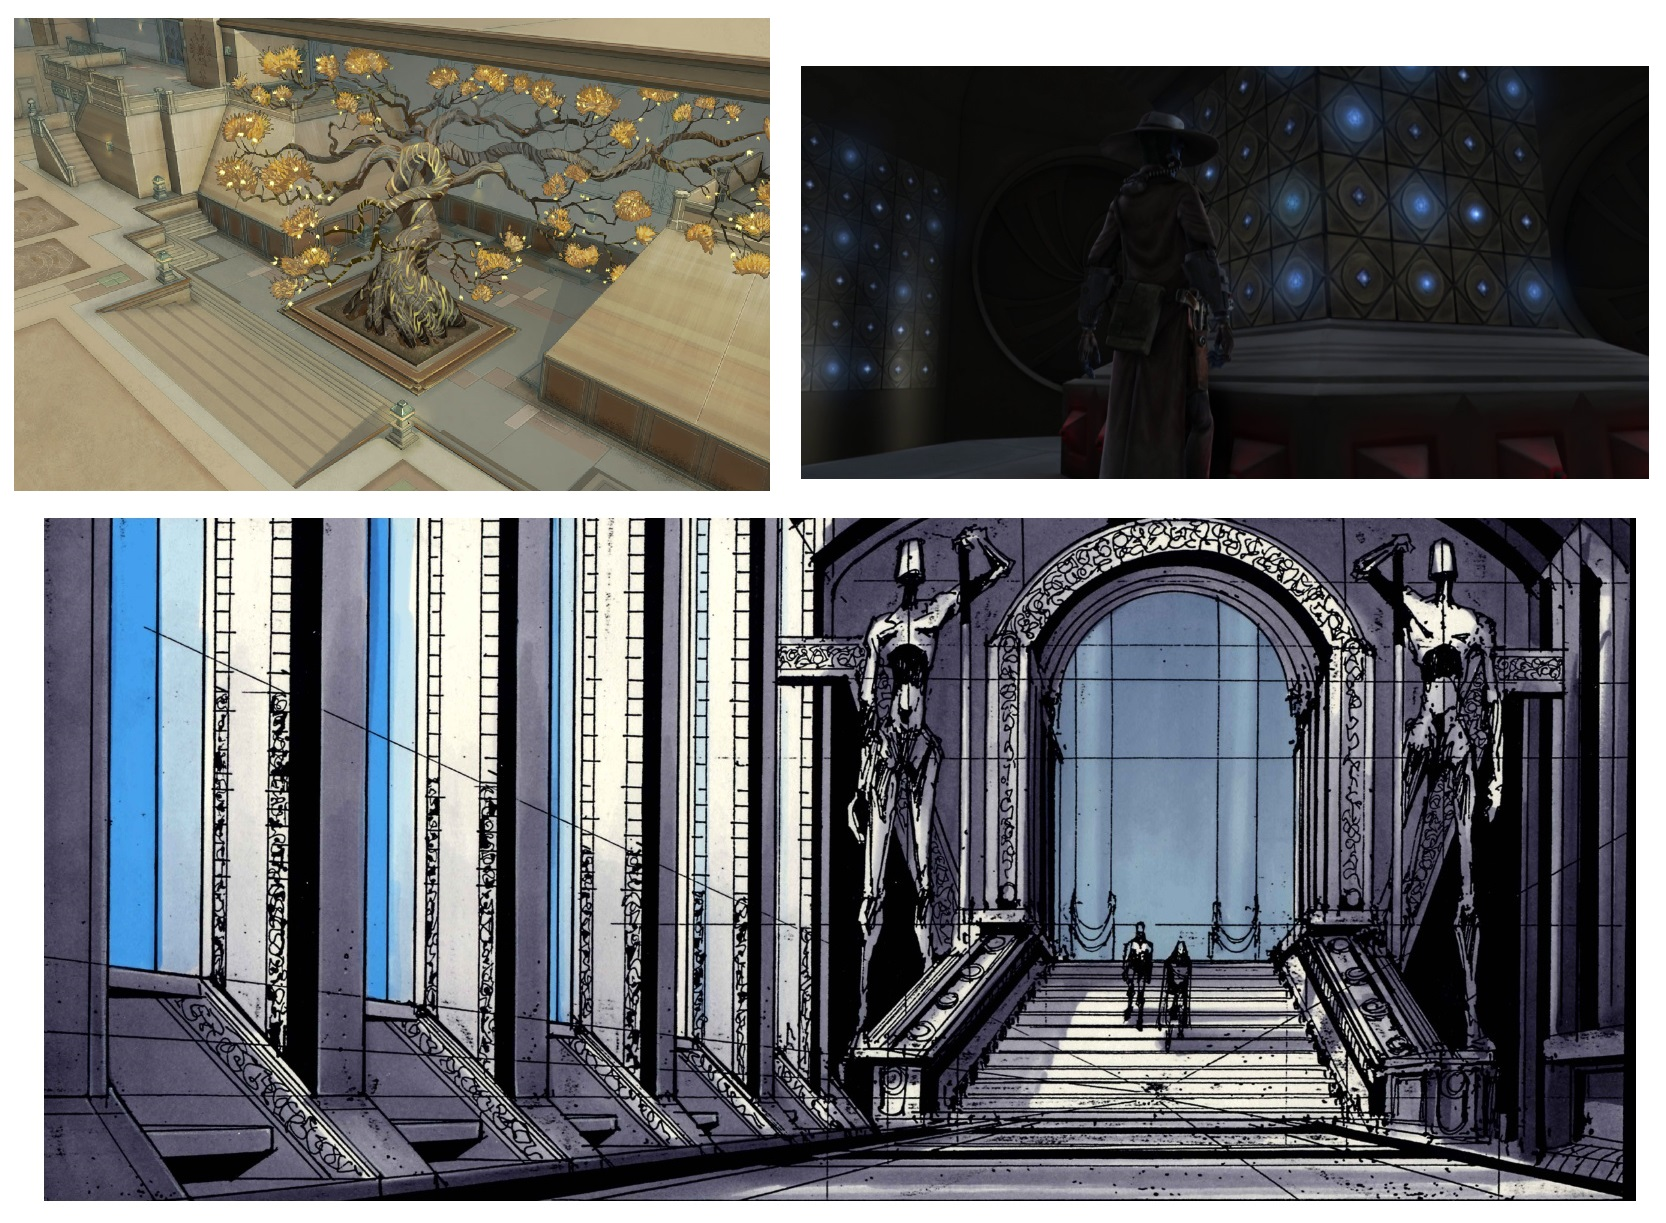 Top row: The Clone Wars locations. Bottom row: Hallway concept art for Revenge of the Sith